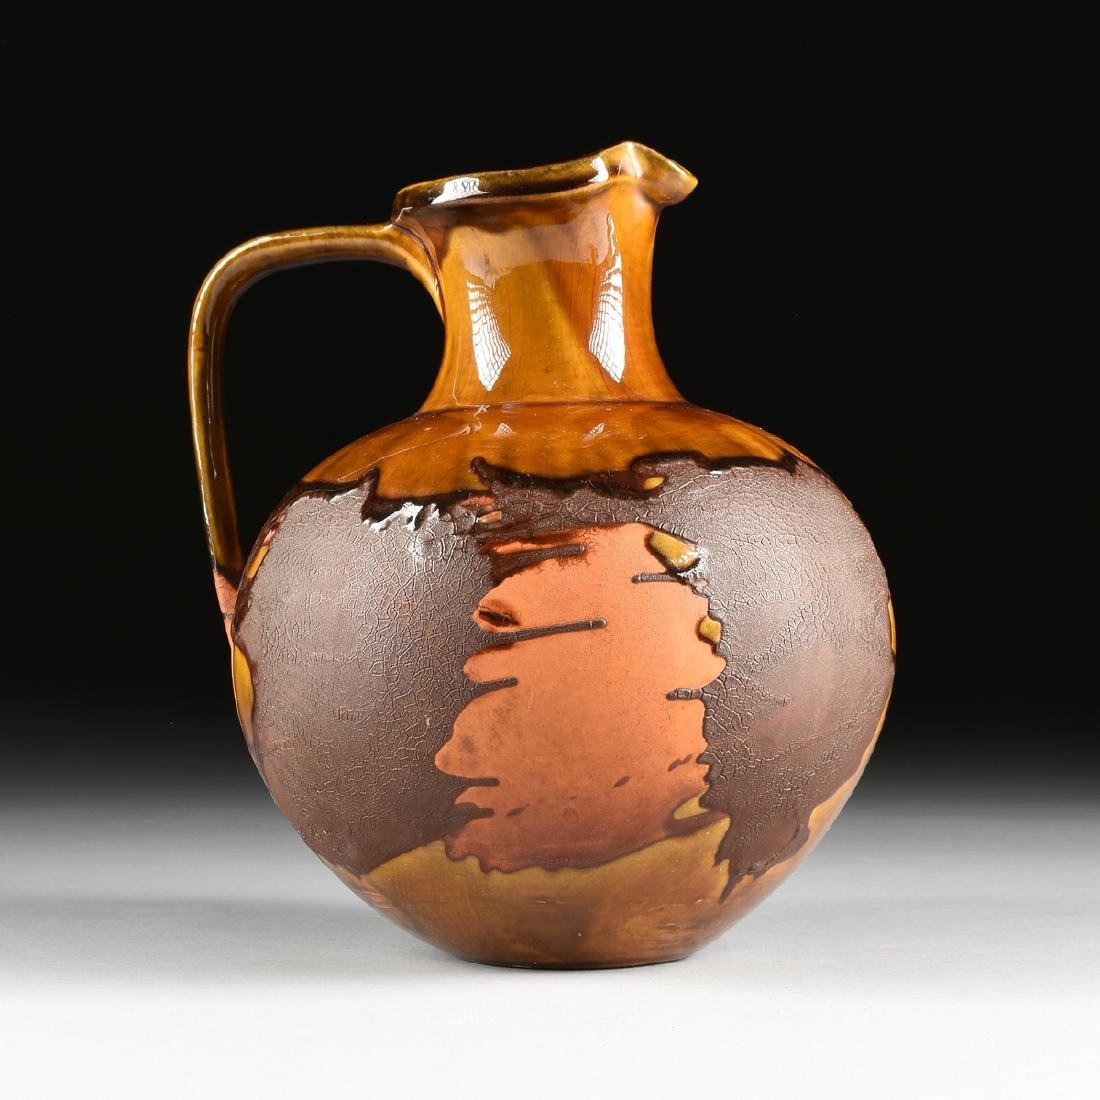 A ROYAL HAEGER LAVA GLAZE CERAMIC PITCHER FROM THE - 2